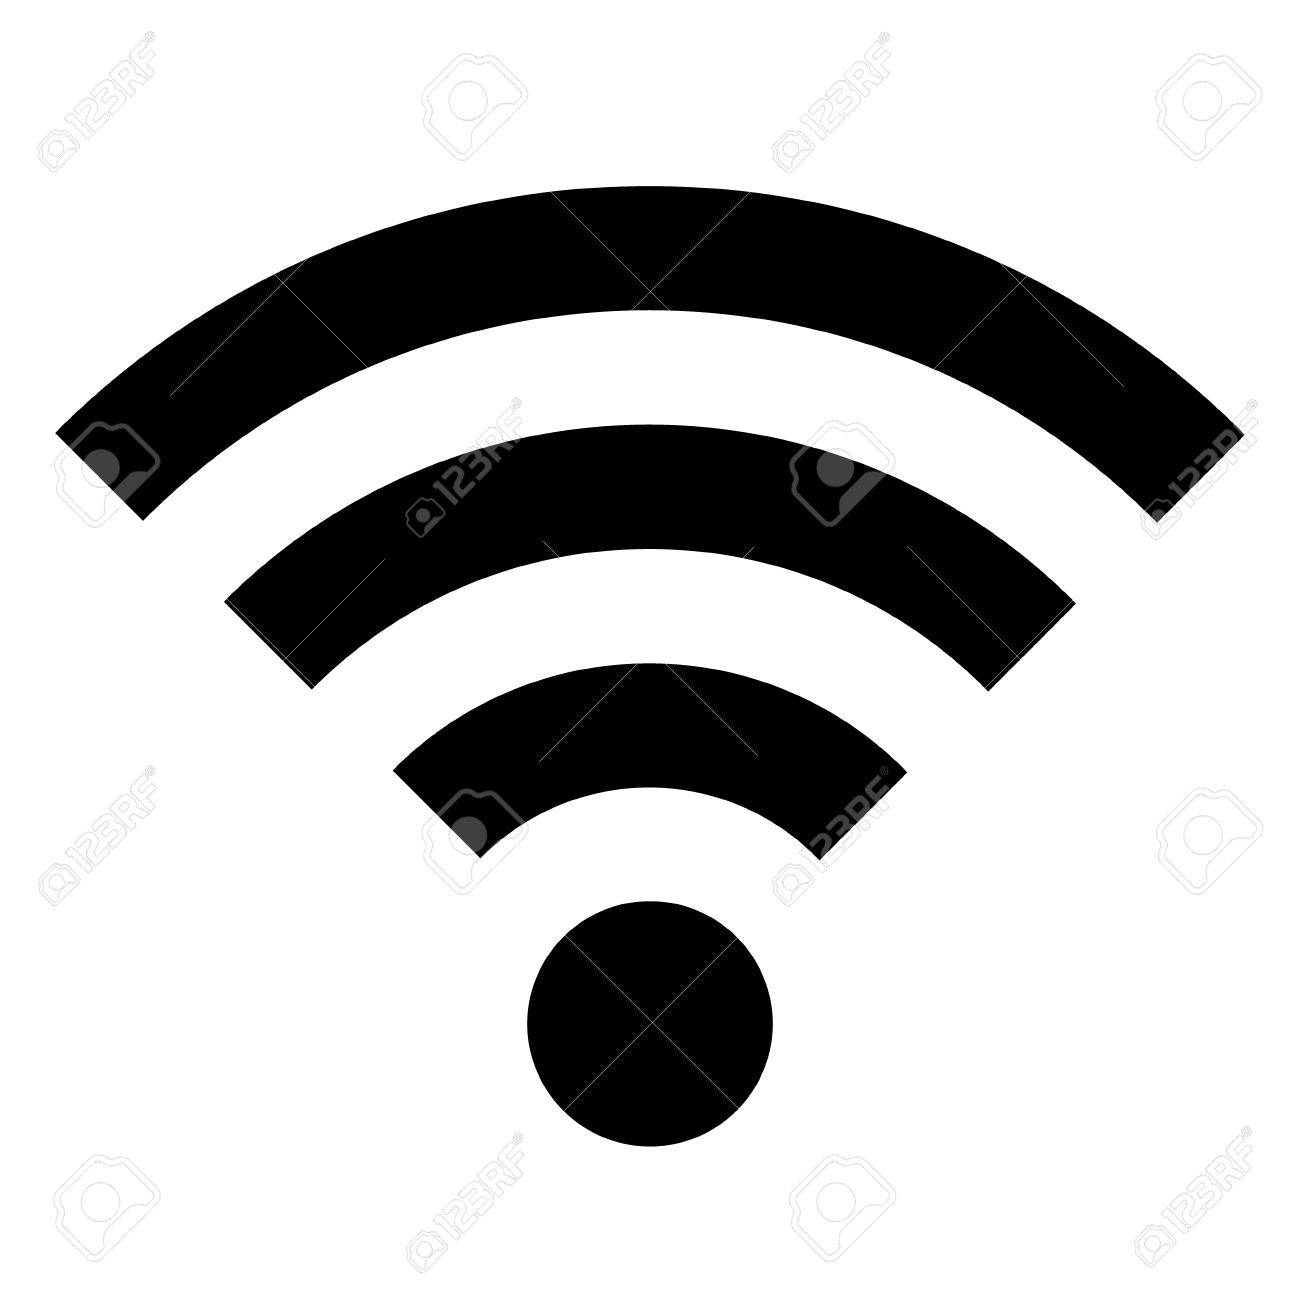 wifi icon on white background vector illustration royalty free rh 123rf com wifi icon vector white wifi icon vector white